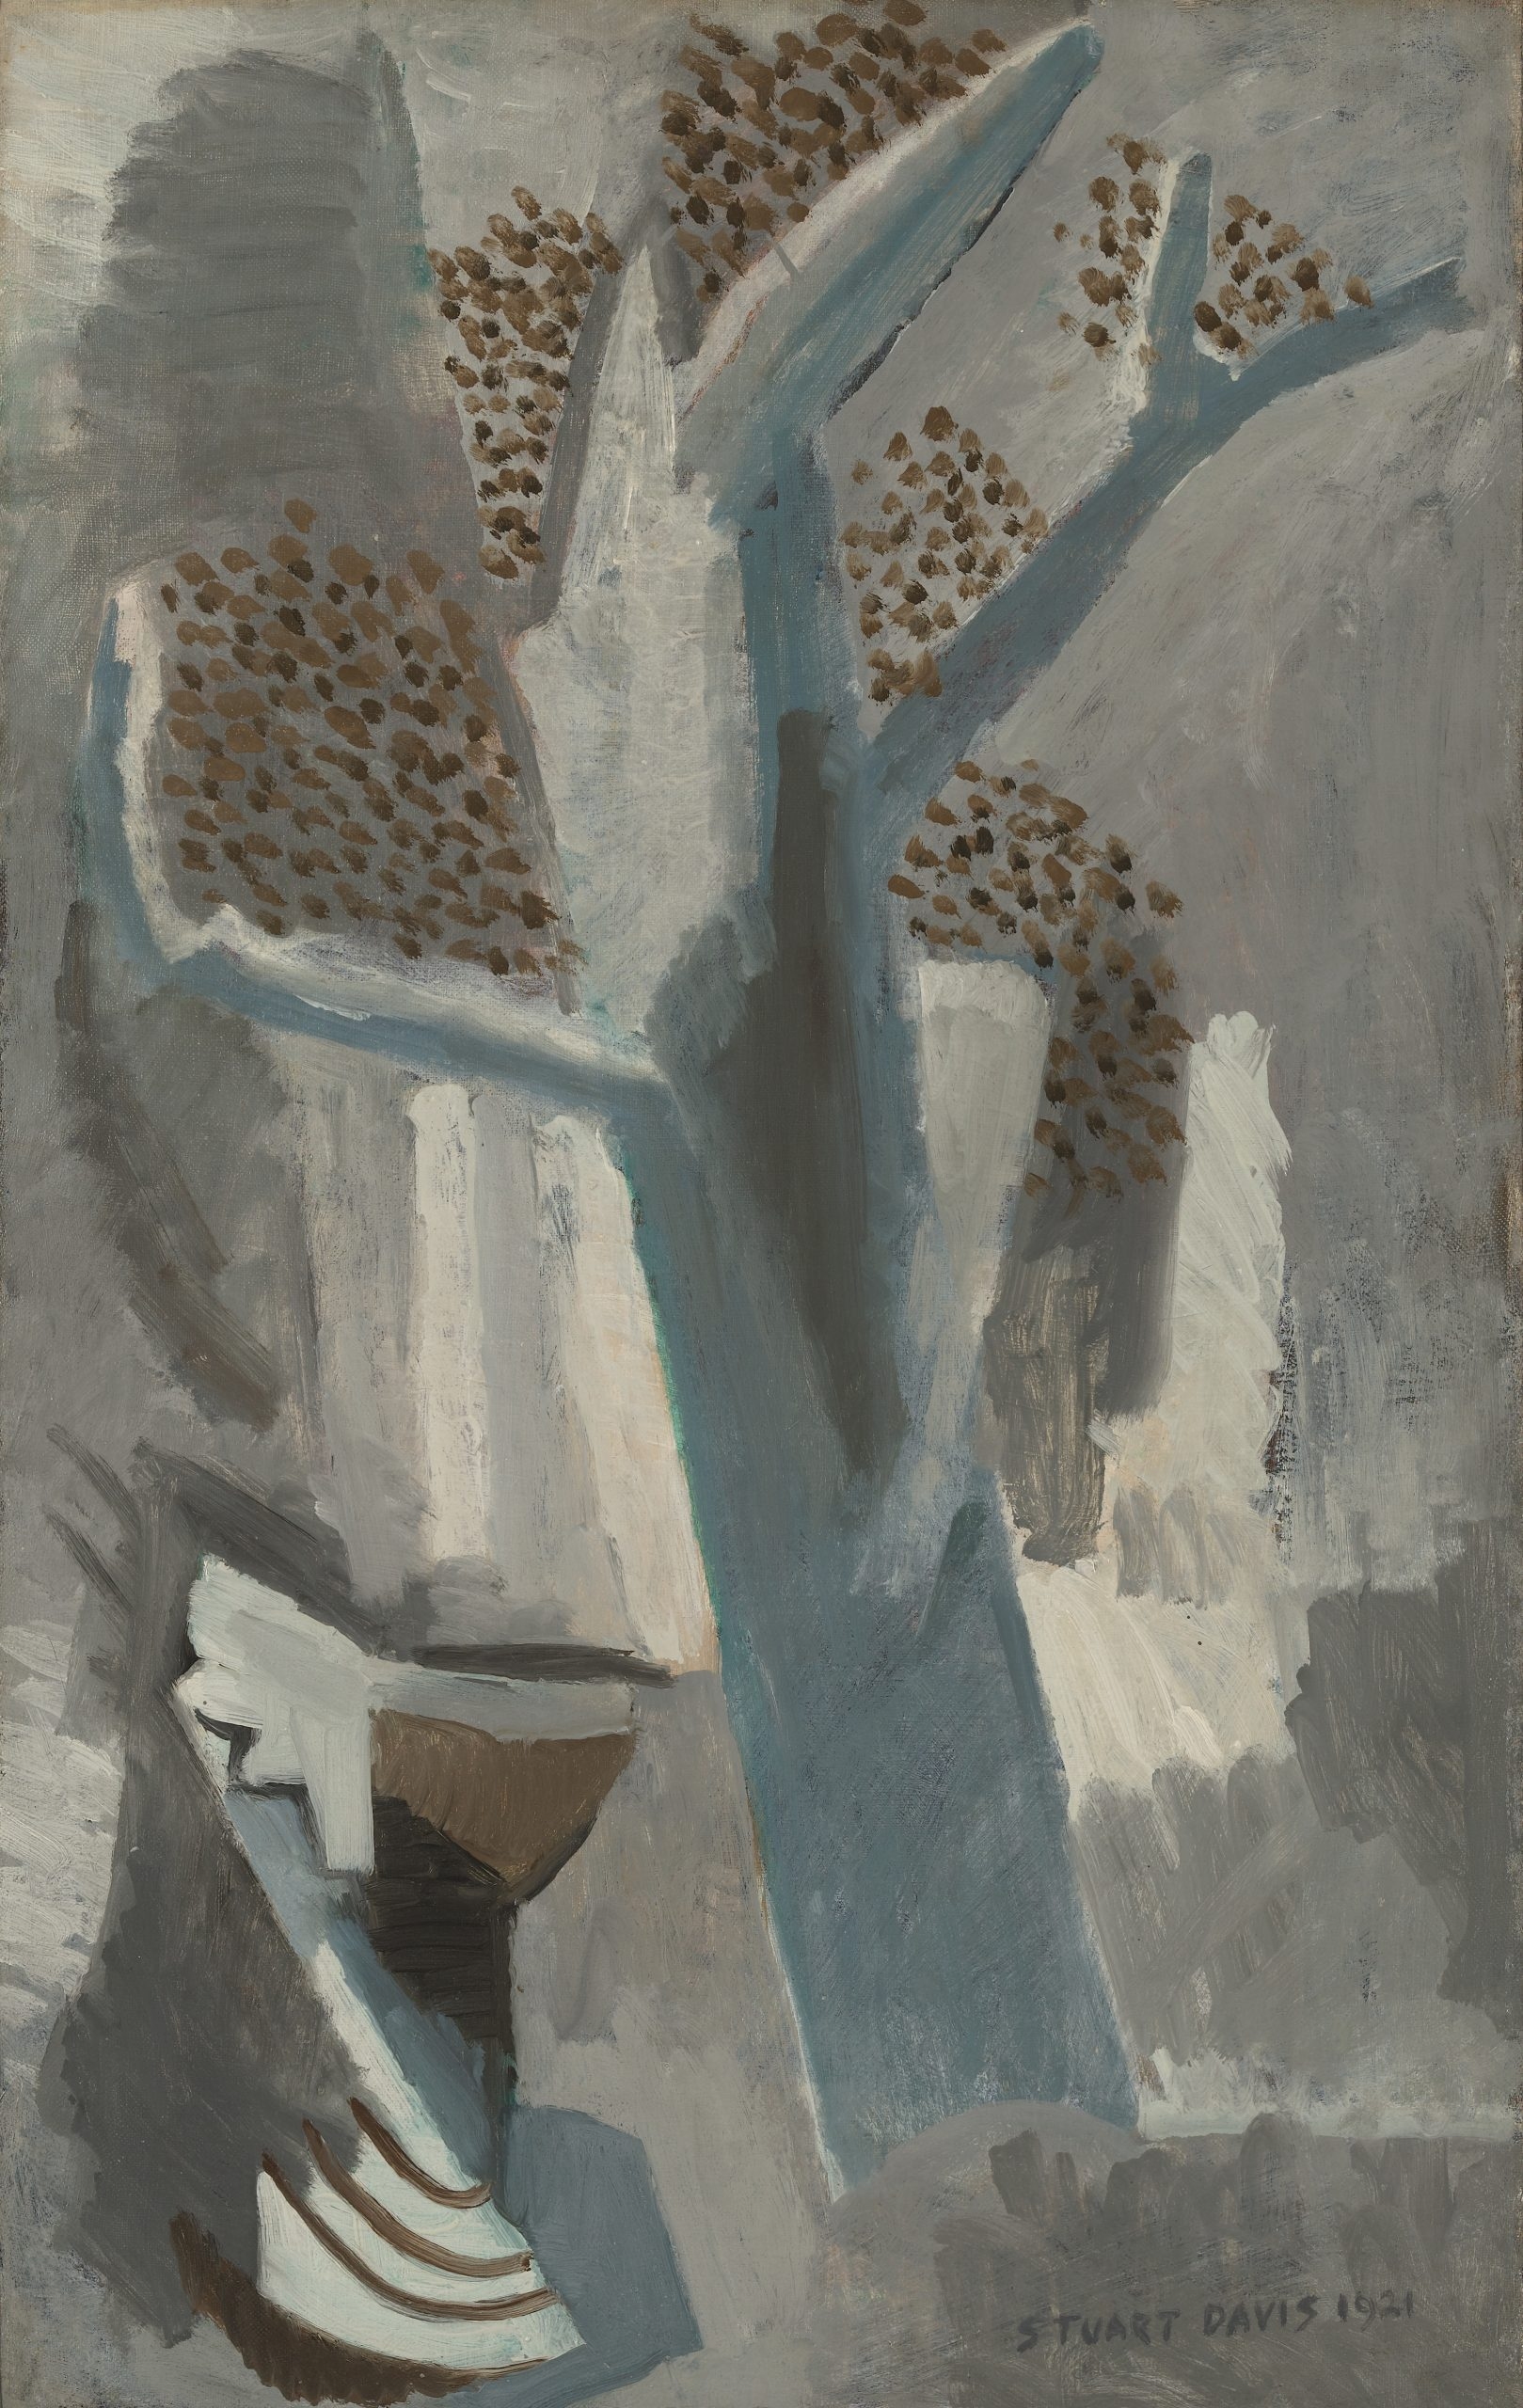 A small urn set next to a large tree in a cubist landscape, areas of brown dots suggest leaves.